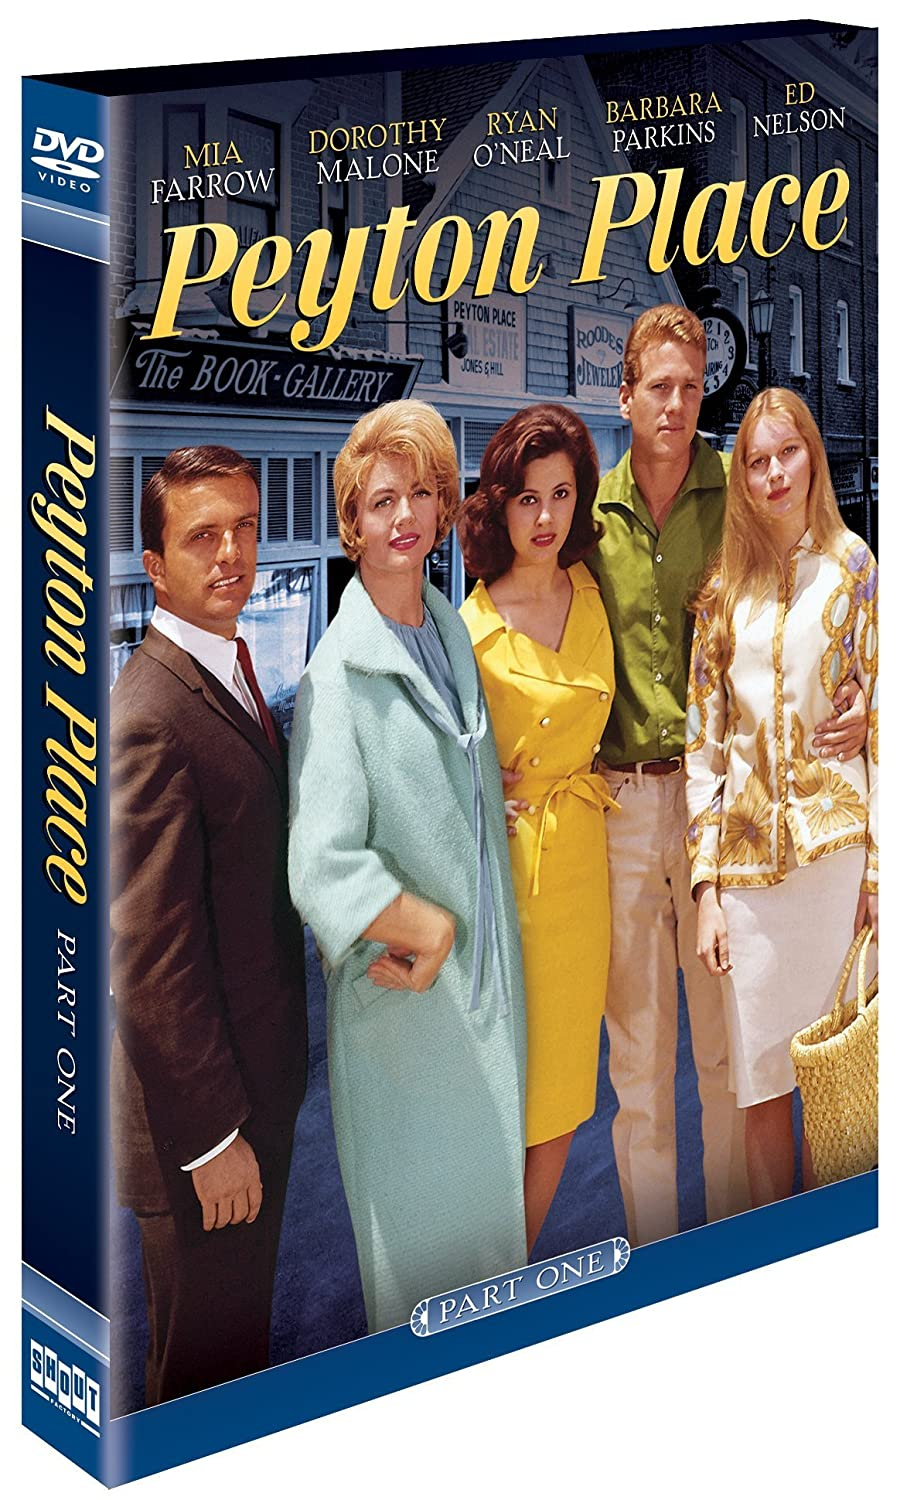 Amazon com: Peyton Place: Part One: Dorothy Malone, Warner